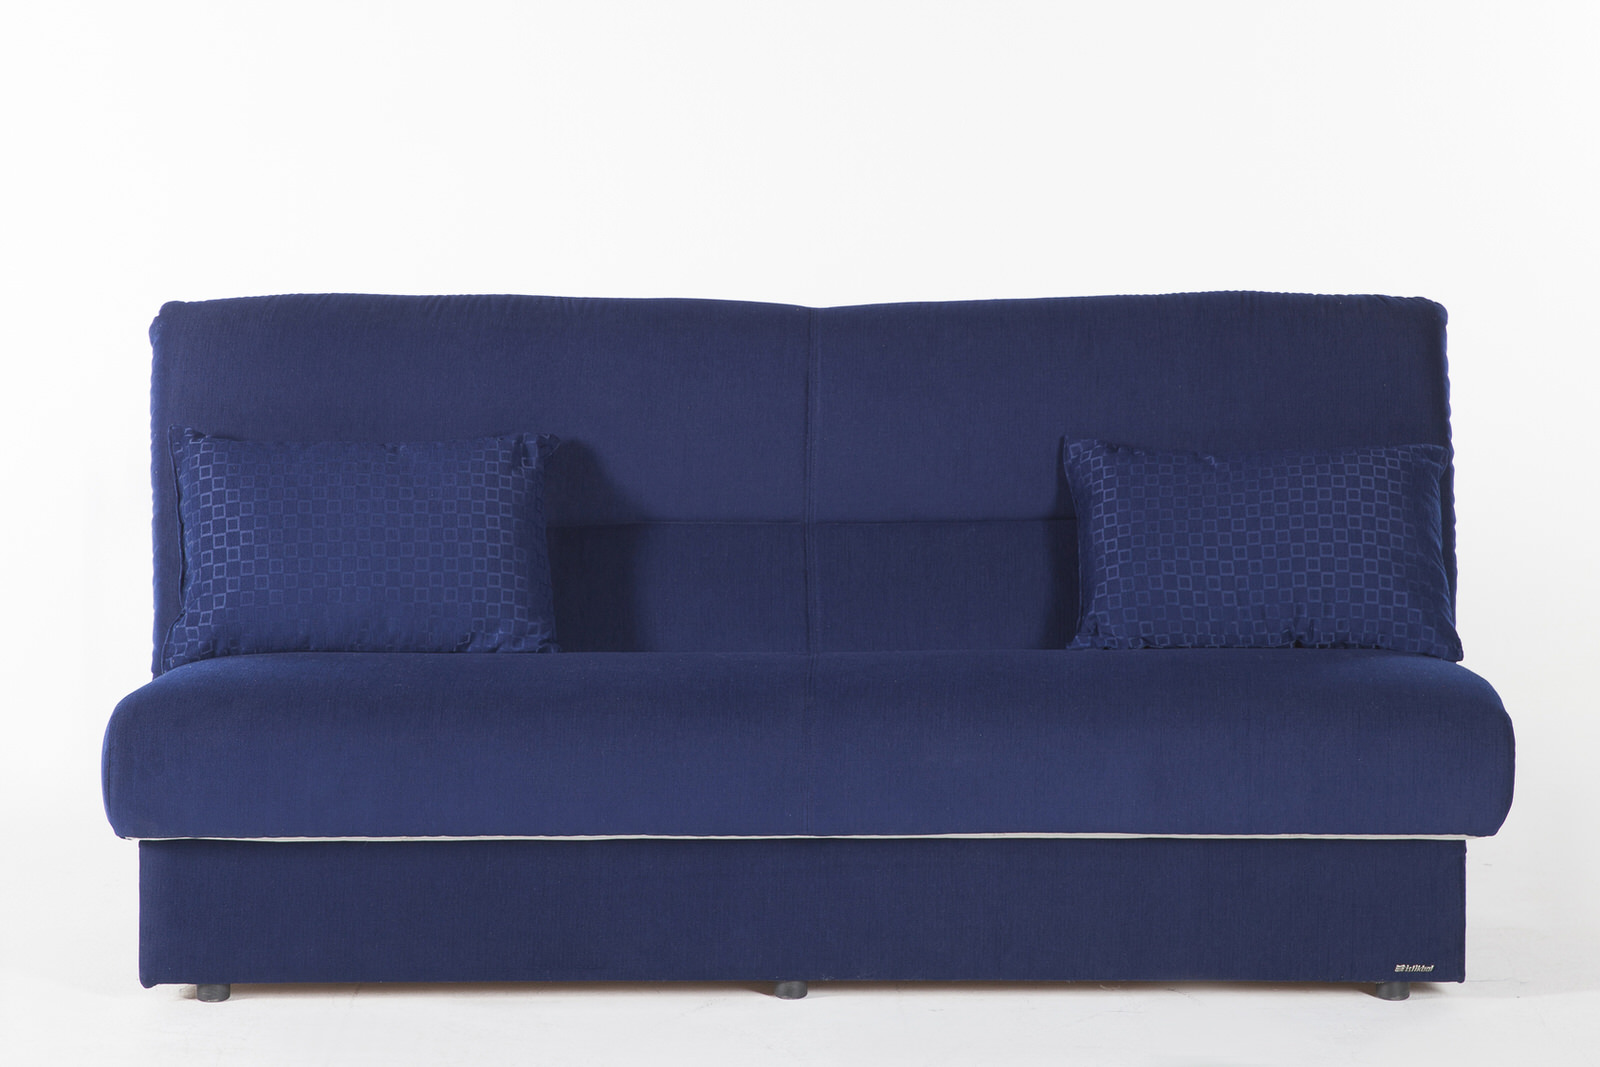 sleeper bonita sleepers products springs sofa textured blue sofas transitional